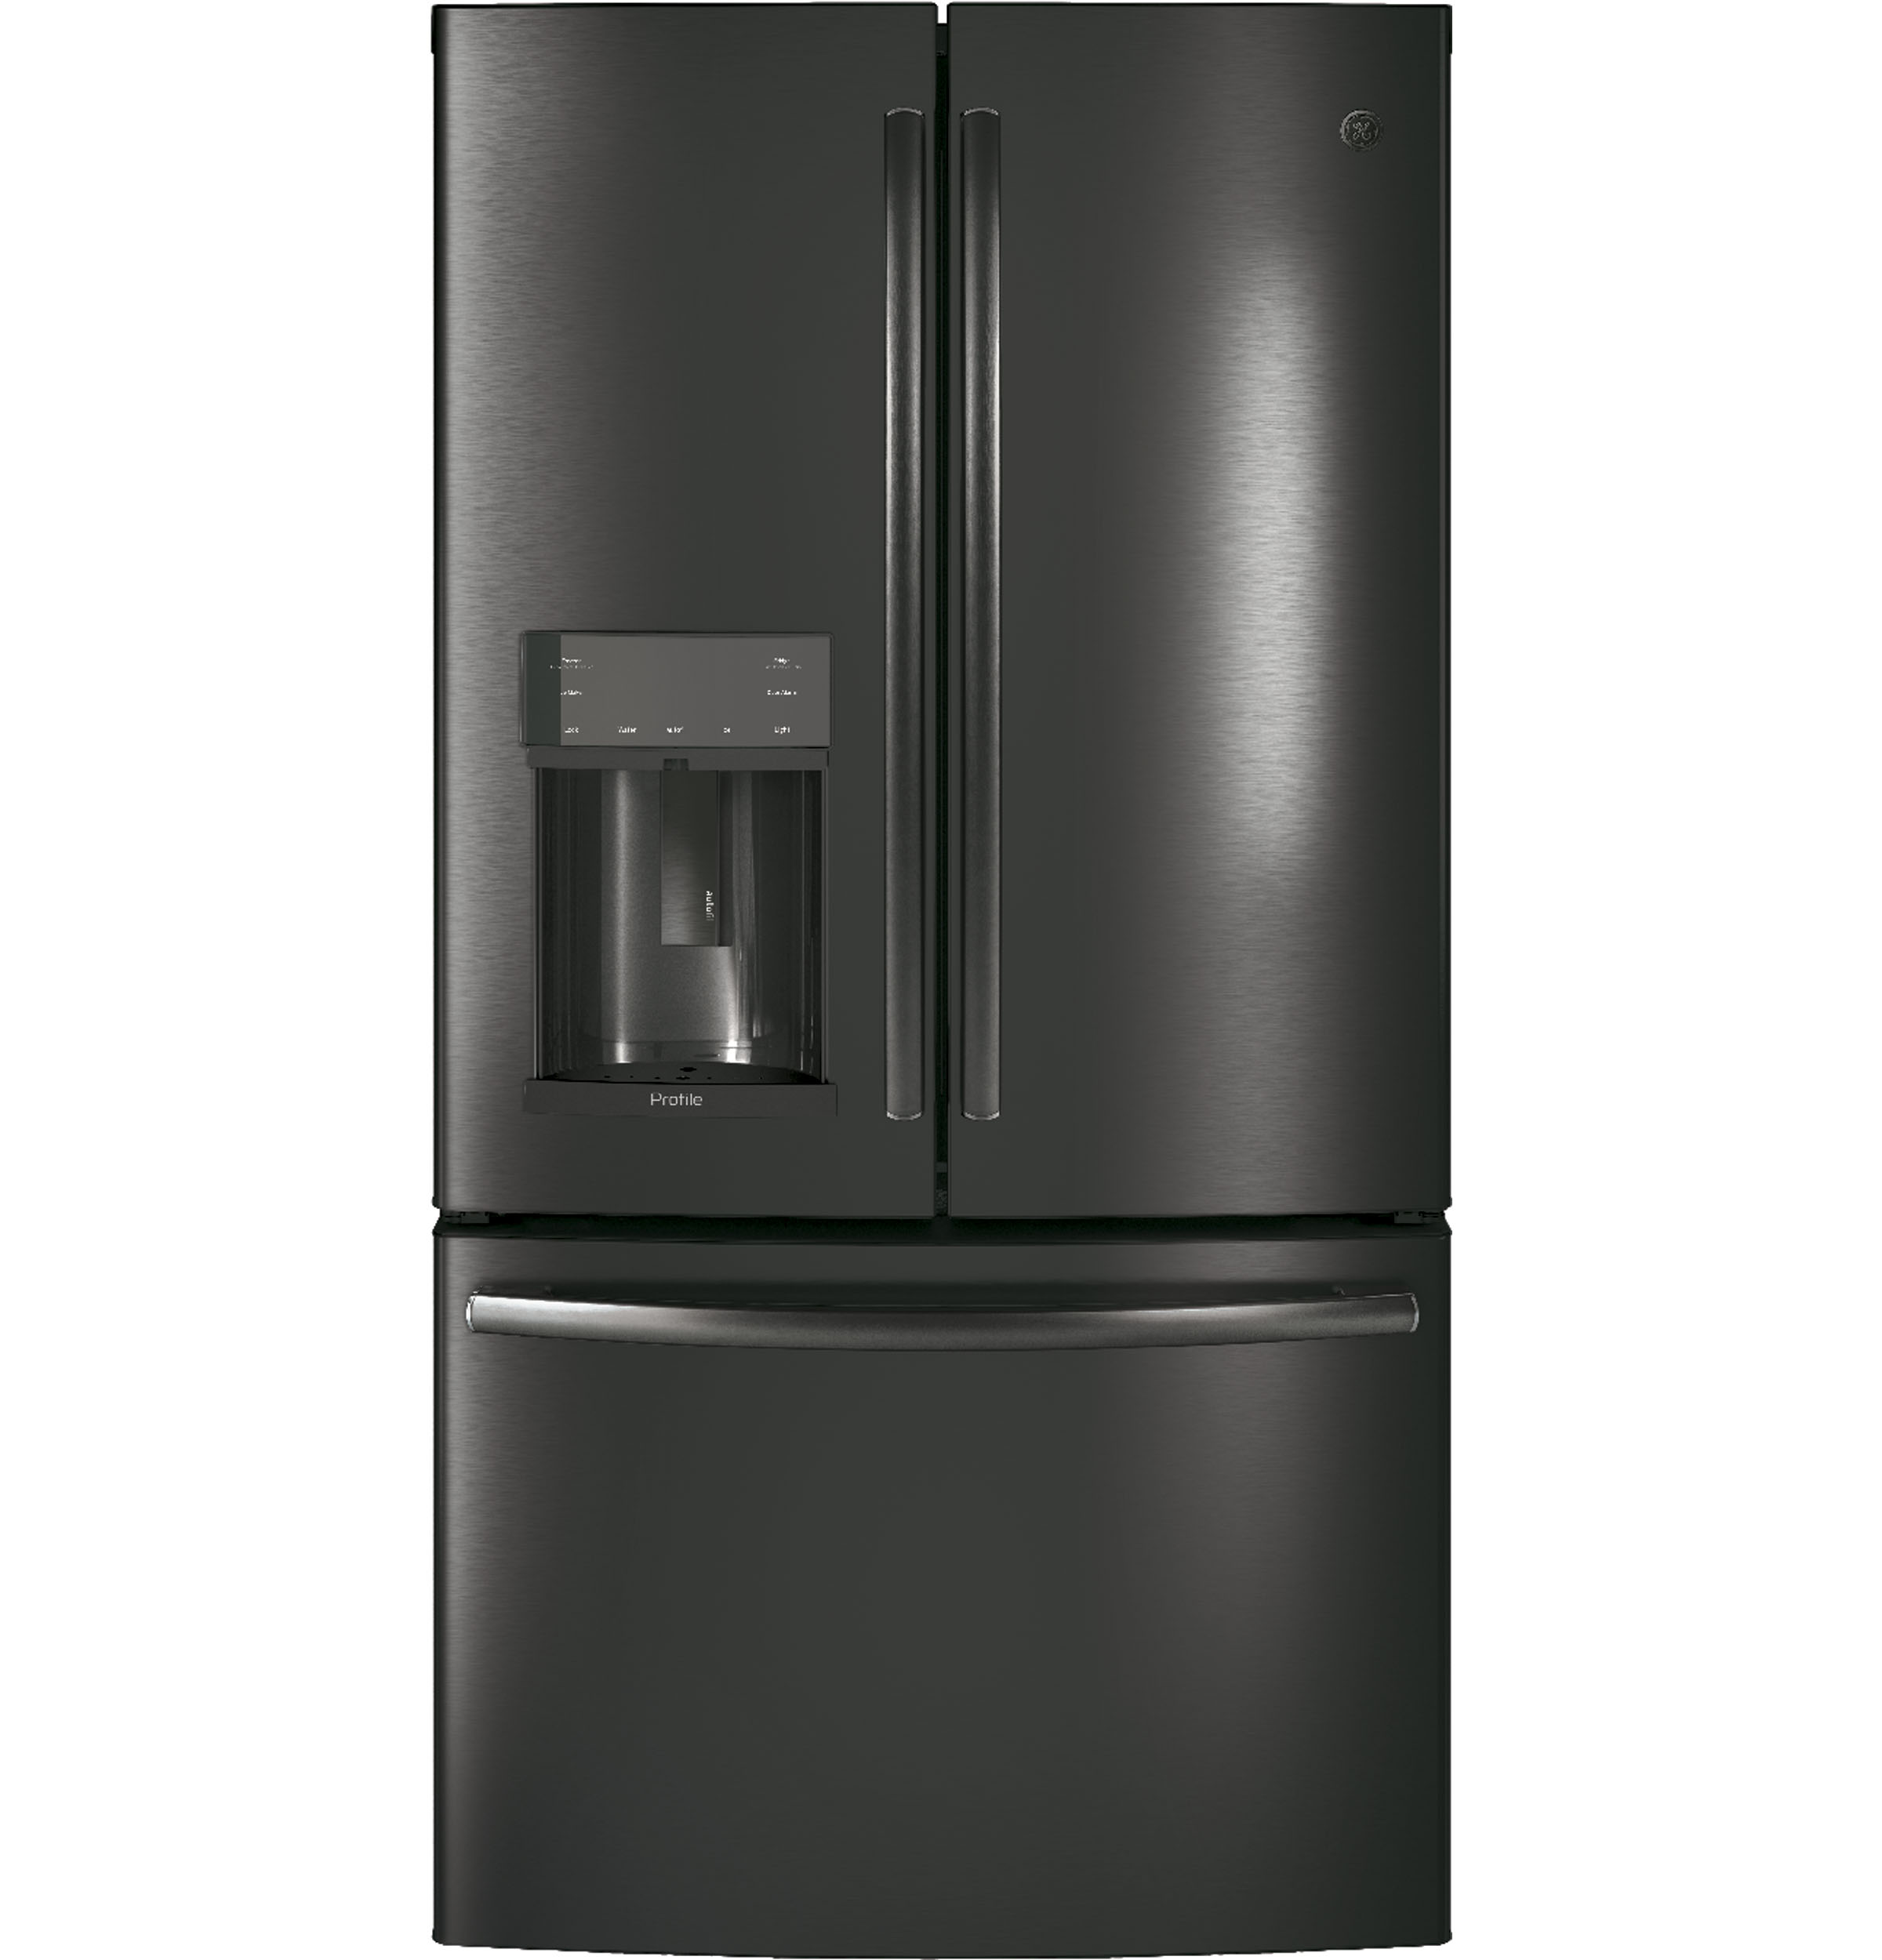 GE Profile GE Profile™ Series ENERGY STAR® 27.8 Cu. Ft. French-Door Refrigerator with Hands-Free AutoFill